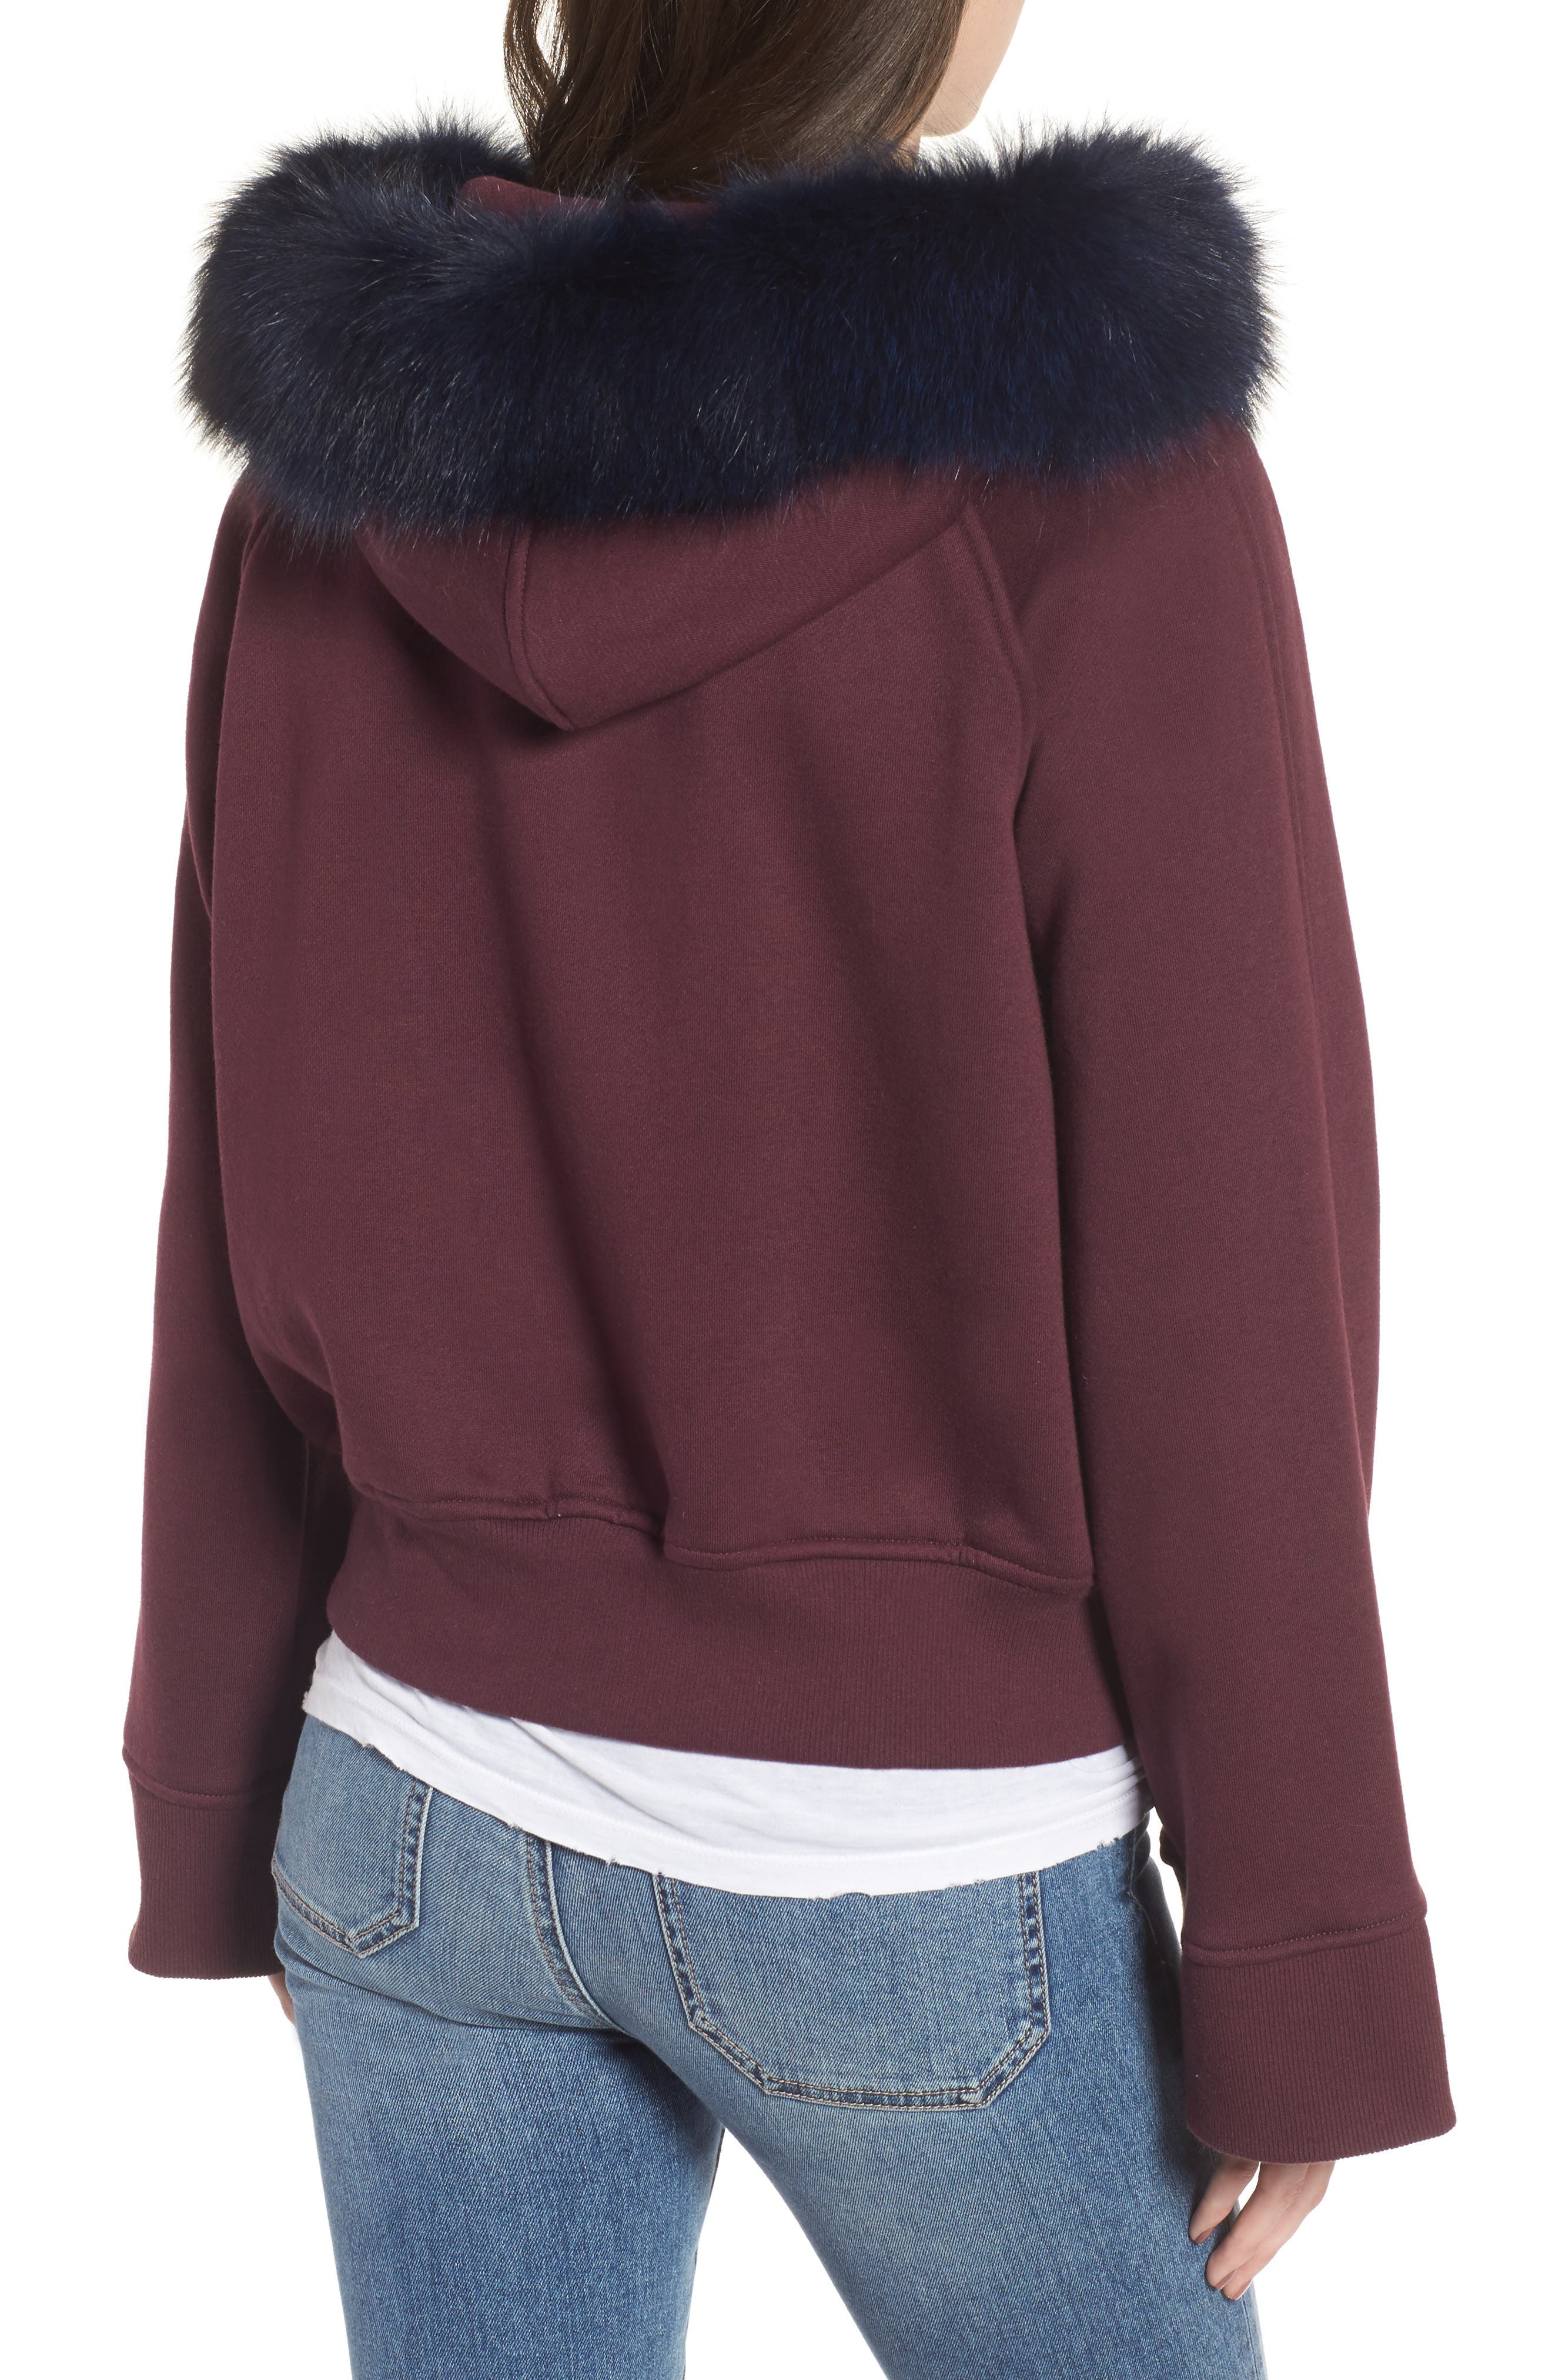 BAGATELLE.CITY The Luxe Hooded Jacket with Genuine Fox Fur Trim,                             Alternate thumbnail 6, color,